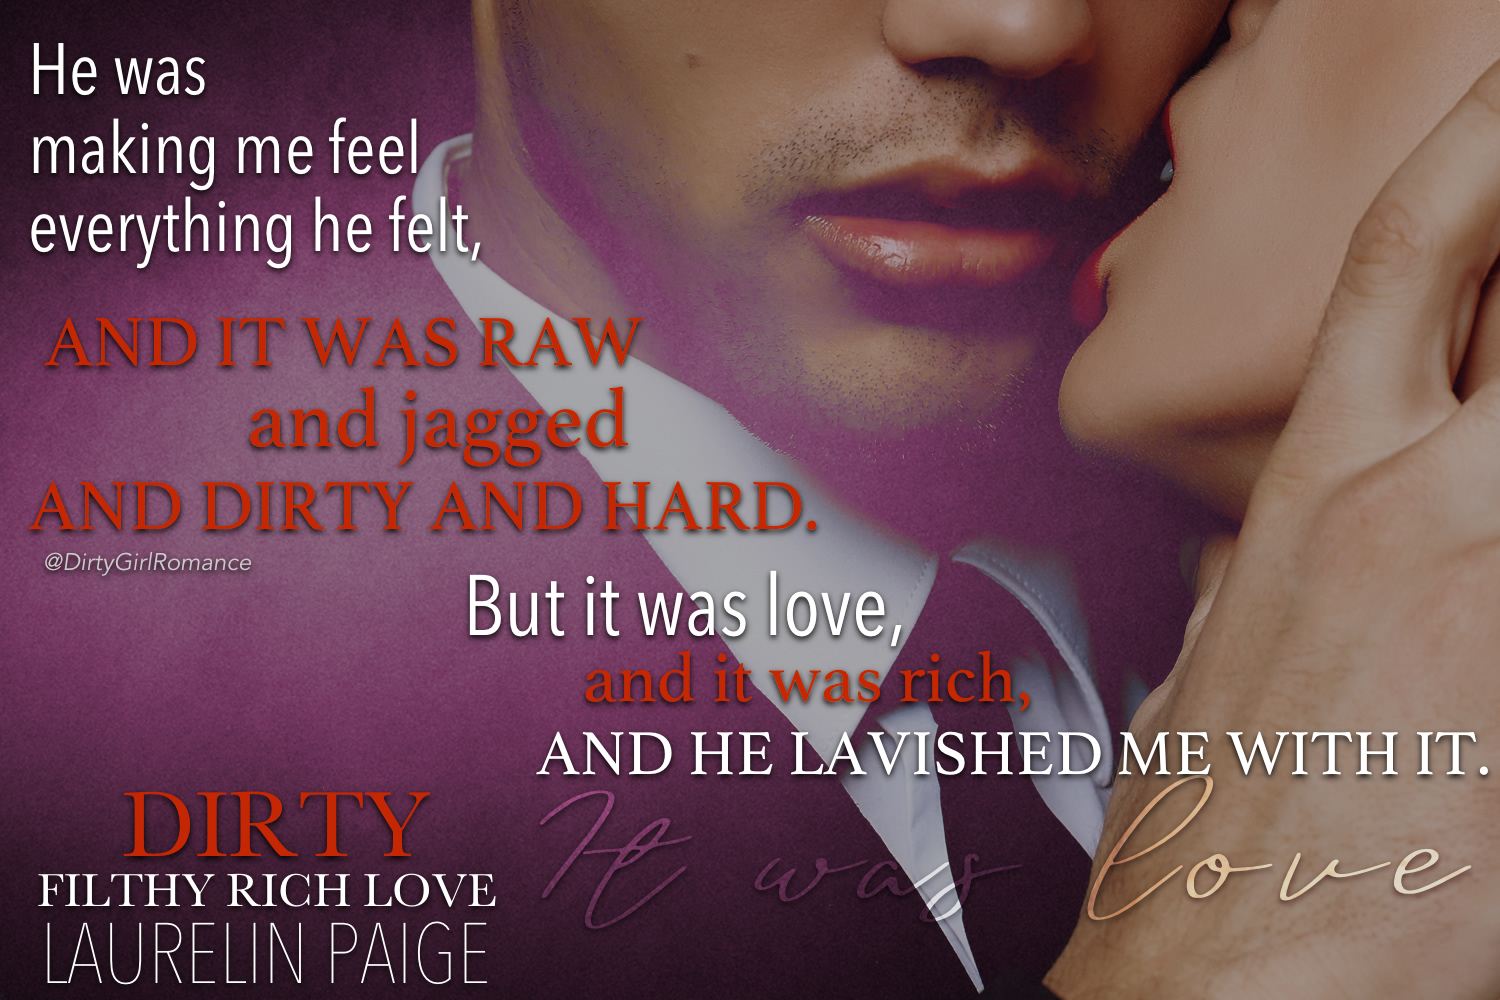 Lana ❇✾Dirty Girl Romance❇✾ (Chicago, IL)'s review of